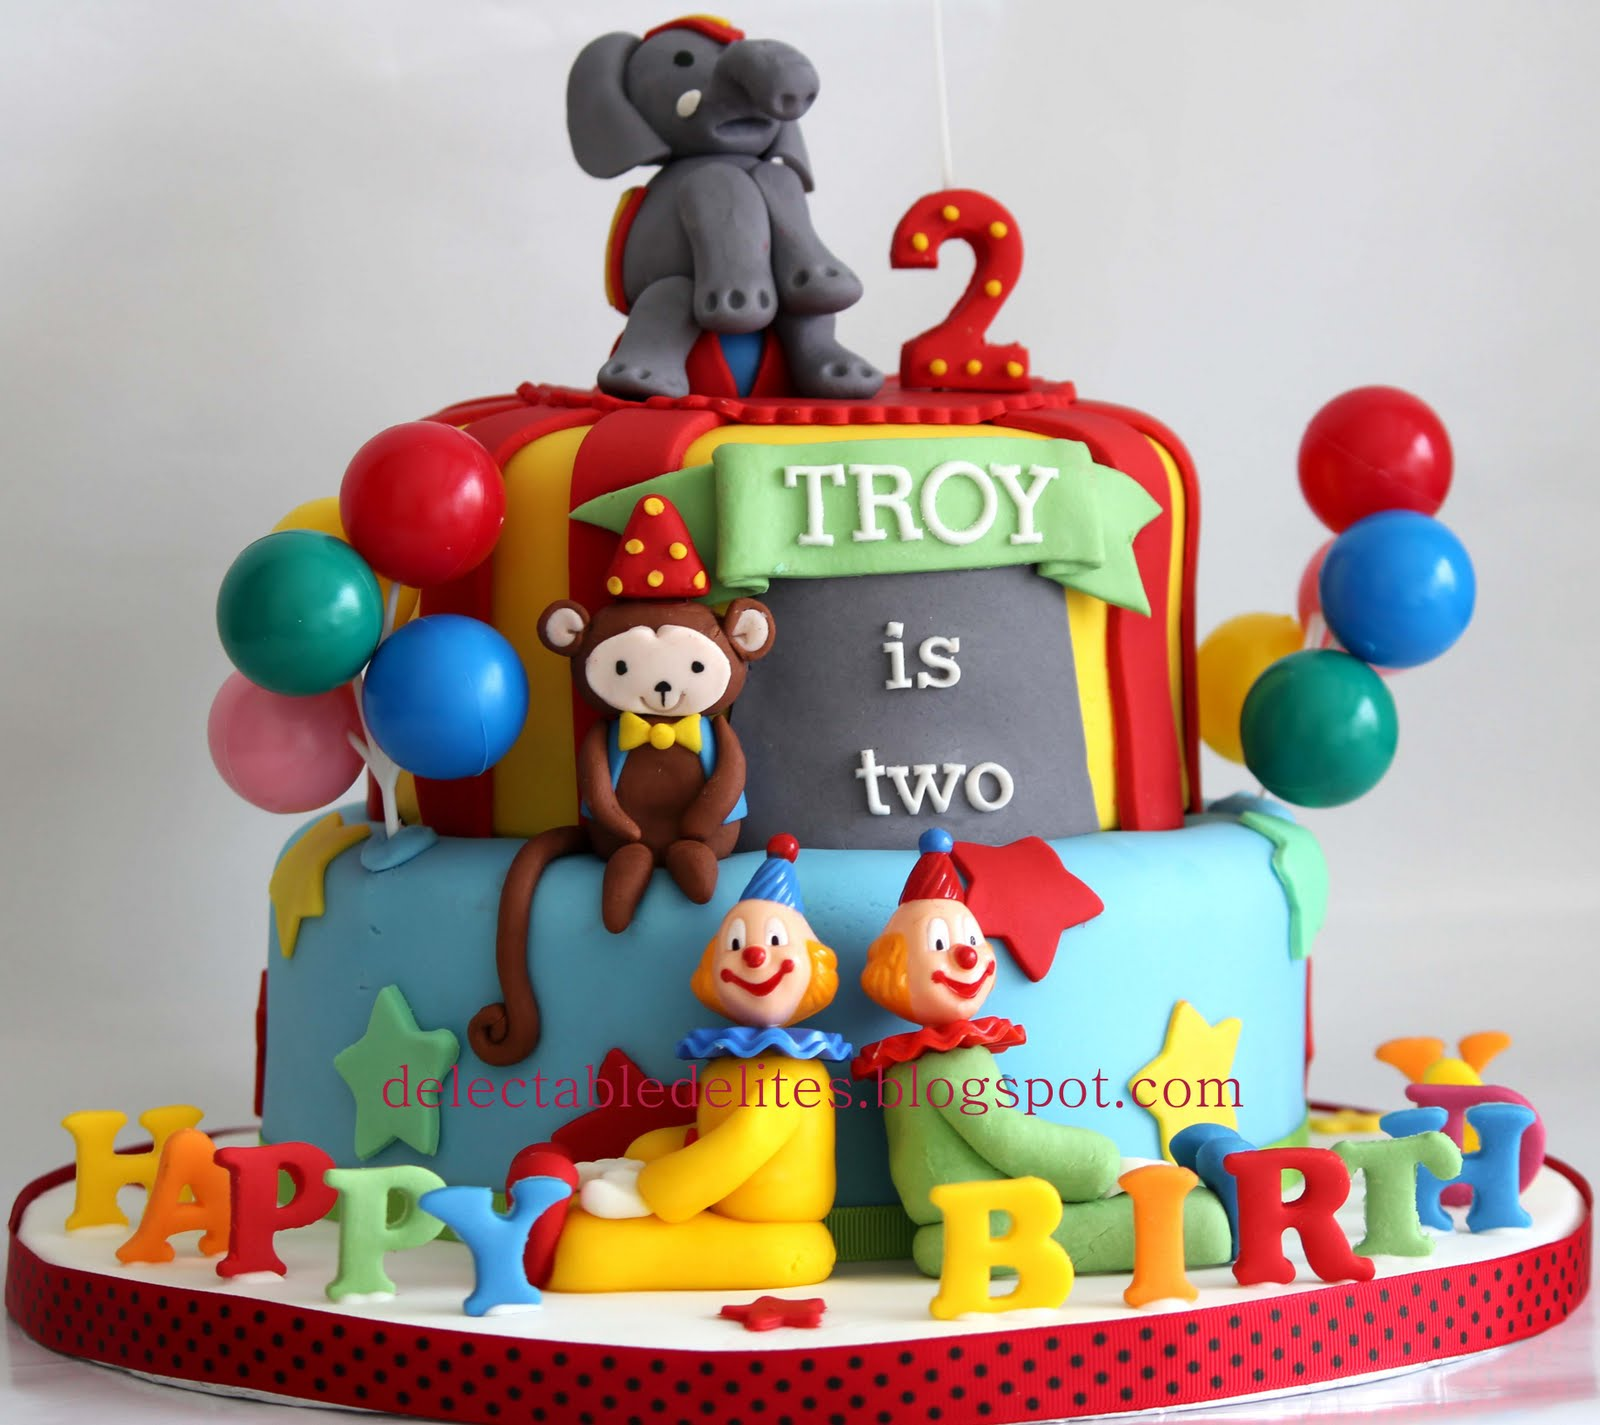 Delectable Delites: Circus Theme Cake For Troy's 2nd Birthday